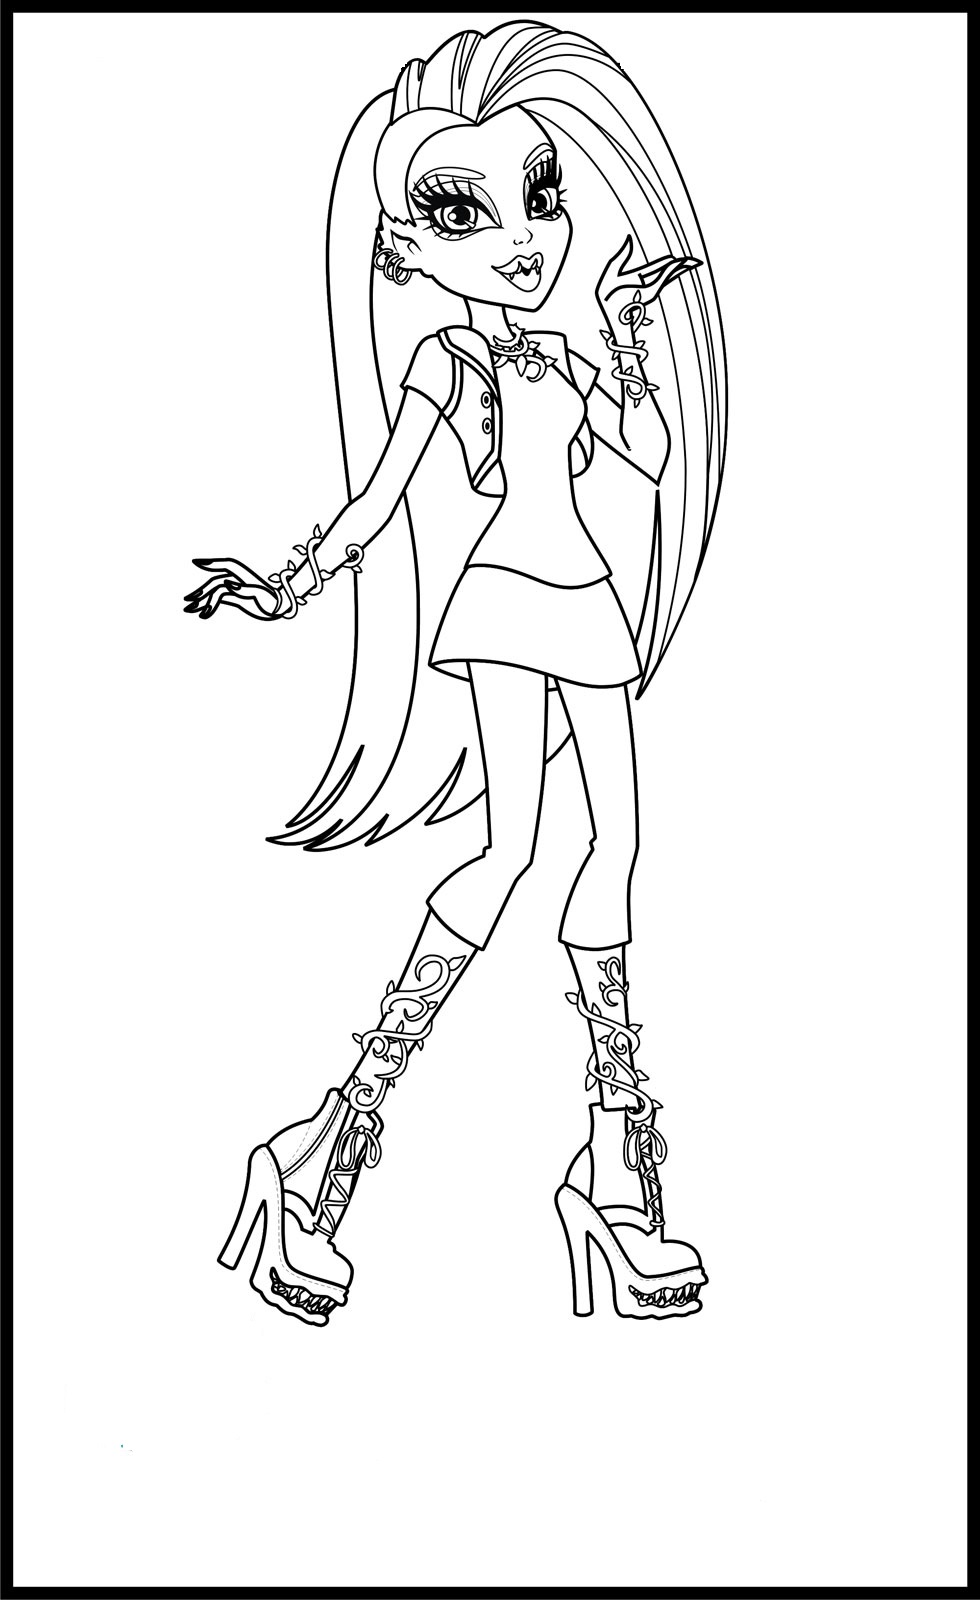 free printable monster high coloring pages for kids - Coloring Pages Monster High Venus